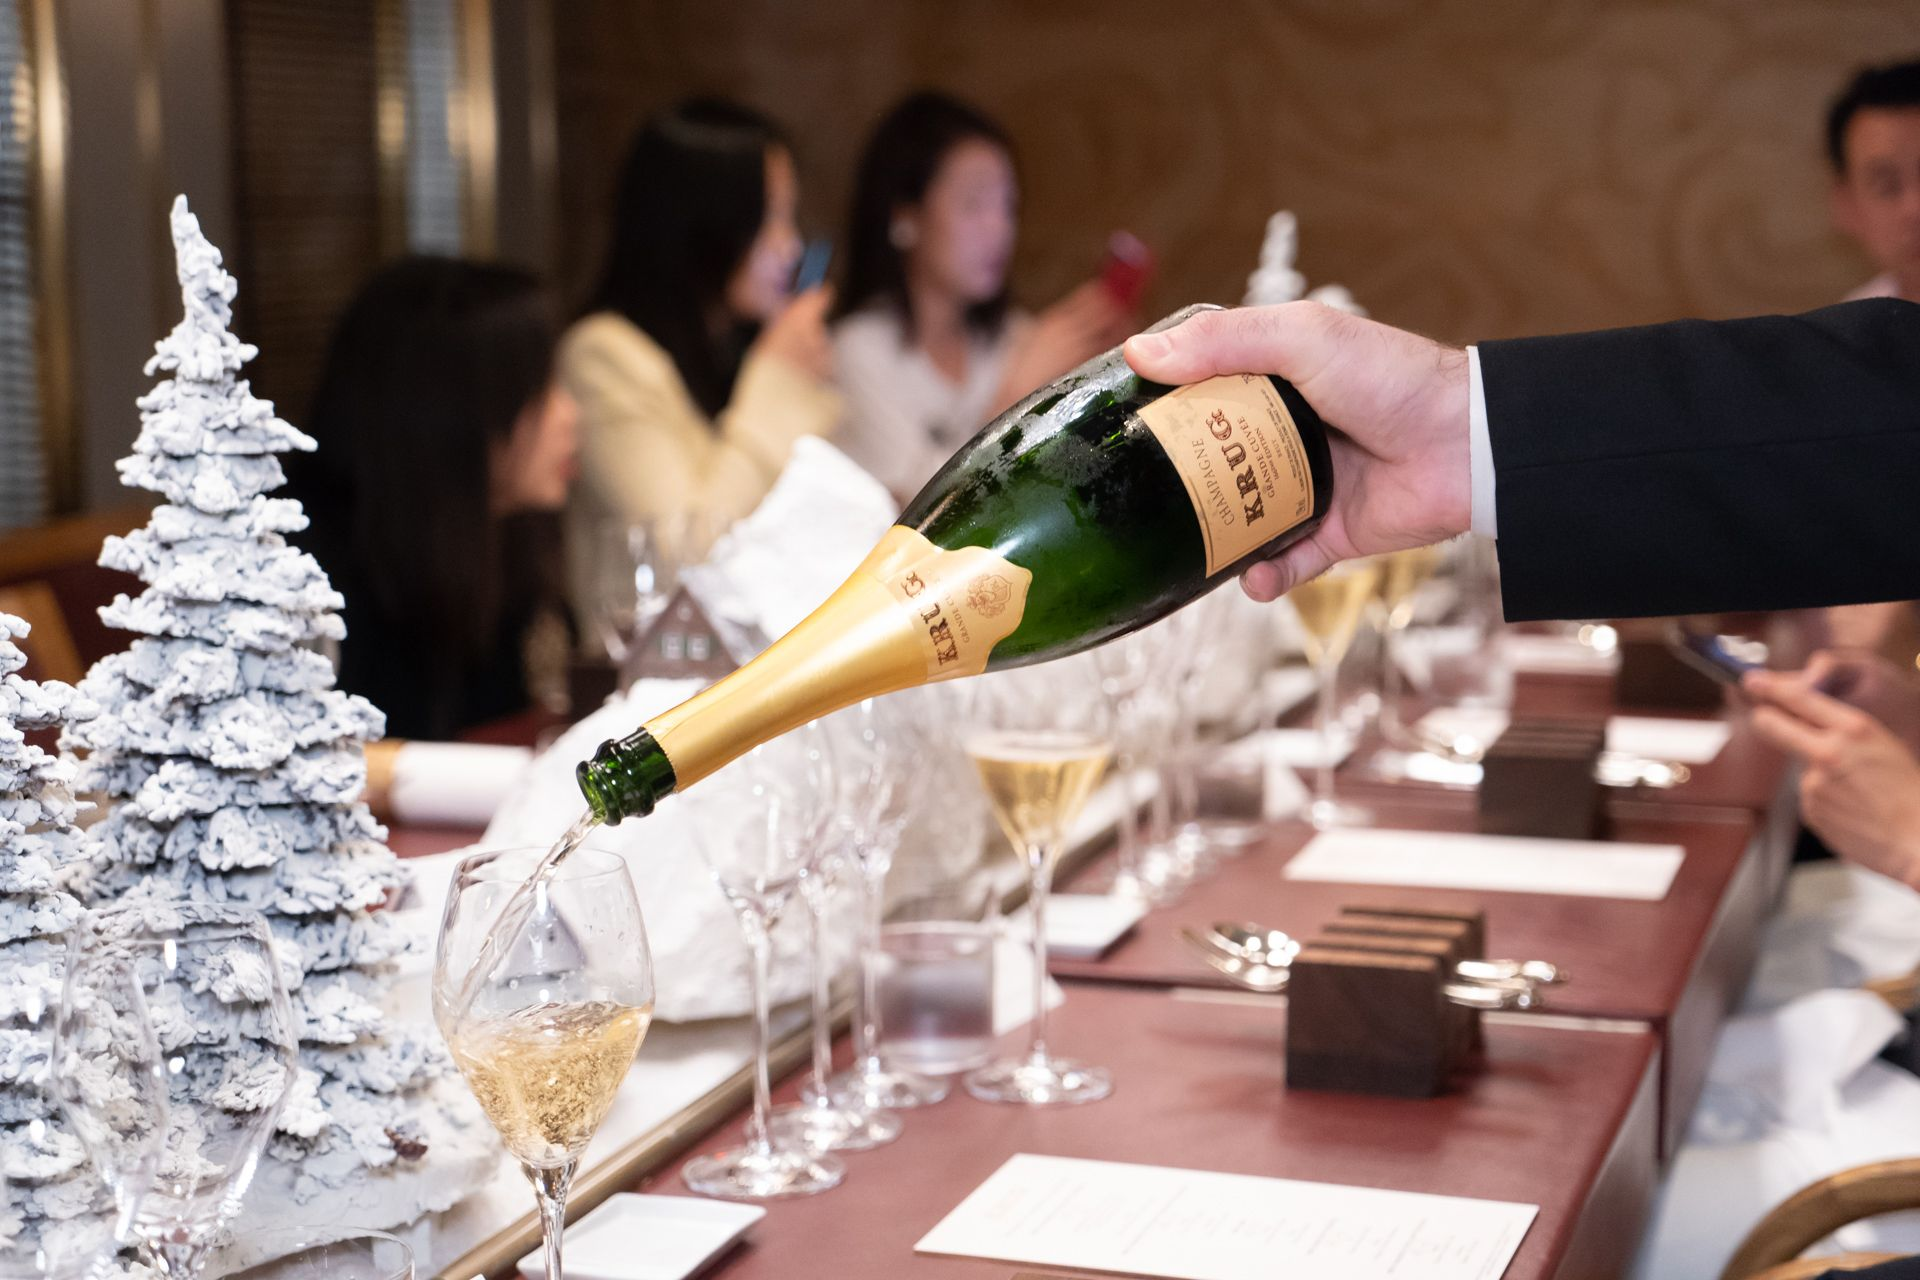 At Krug Room, Evan Chow's Childhood Memories Are Crafted Into Haute Cuisine